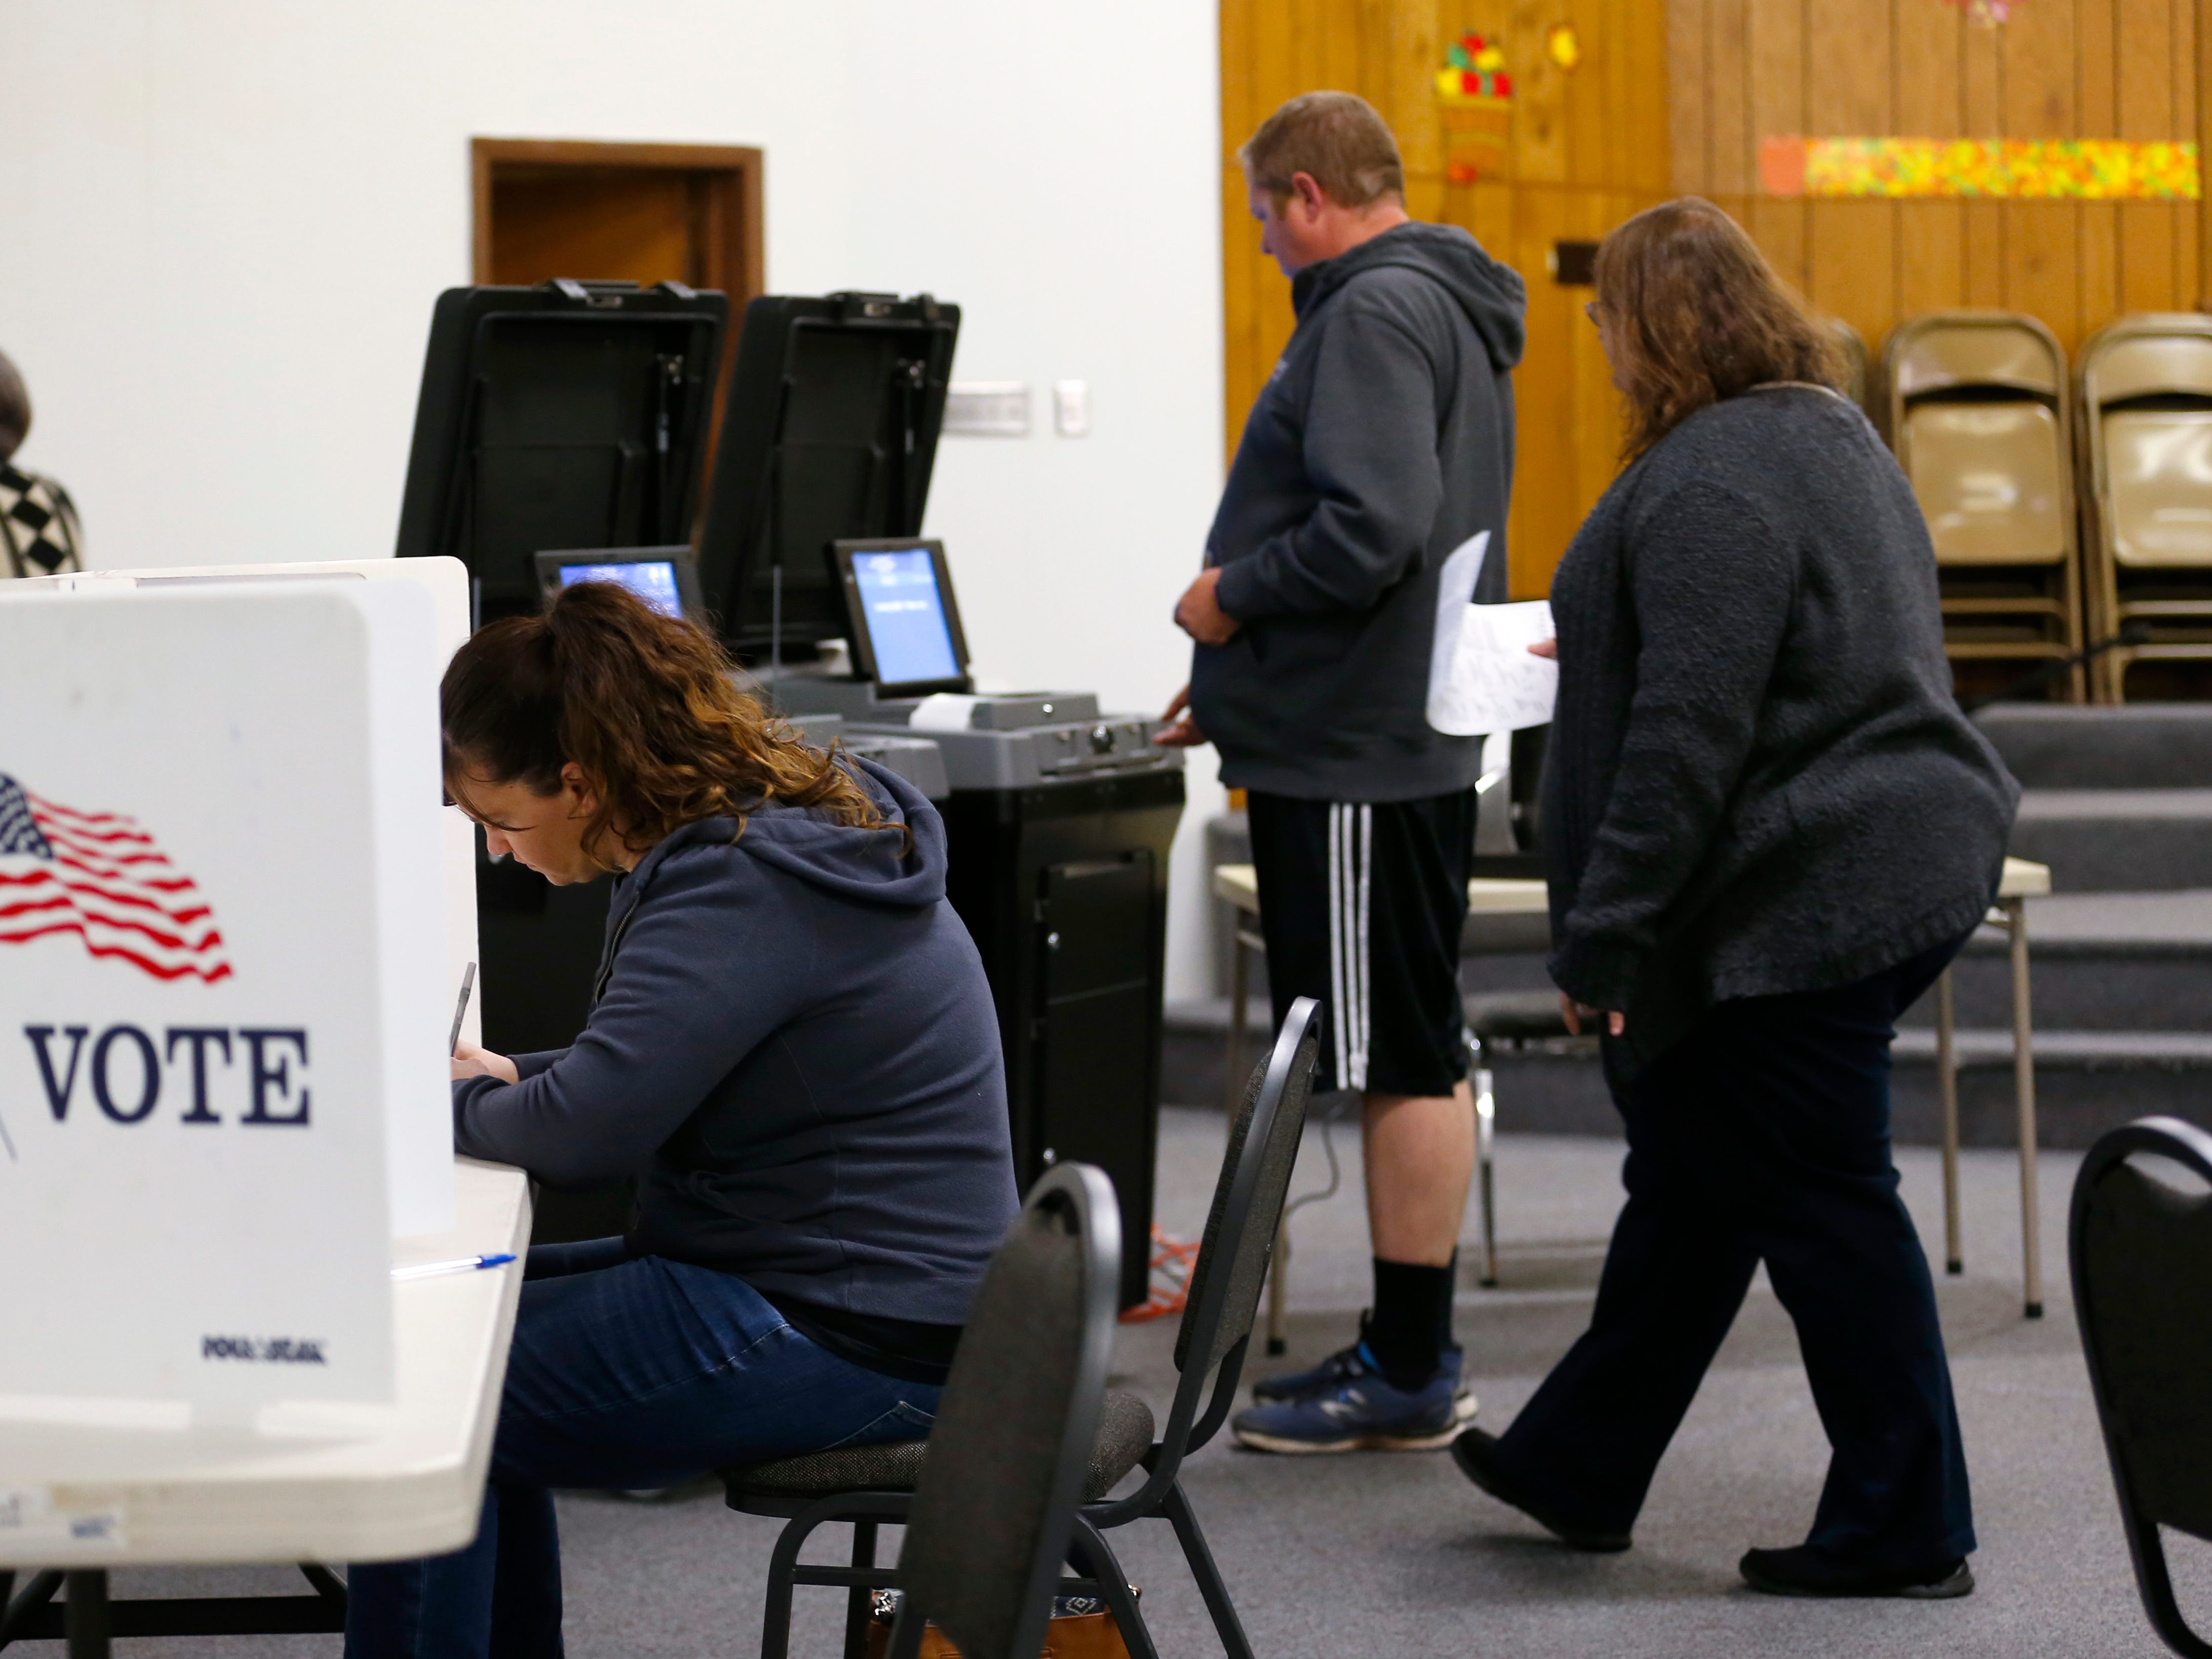 Lisa Silver casts her ballot at the Springfield Bible Church polling location on Tuesday, Nov. 6, 2018.